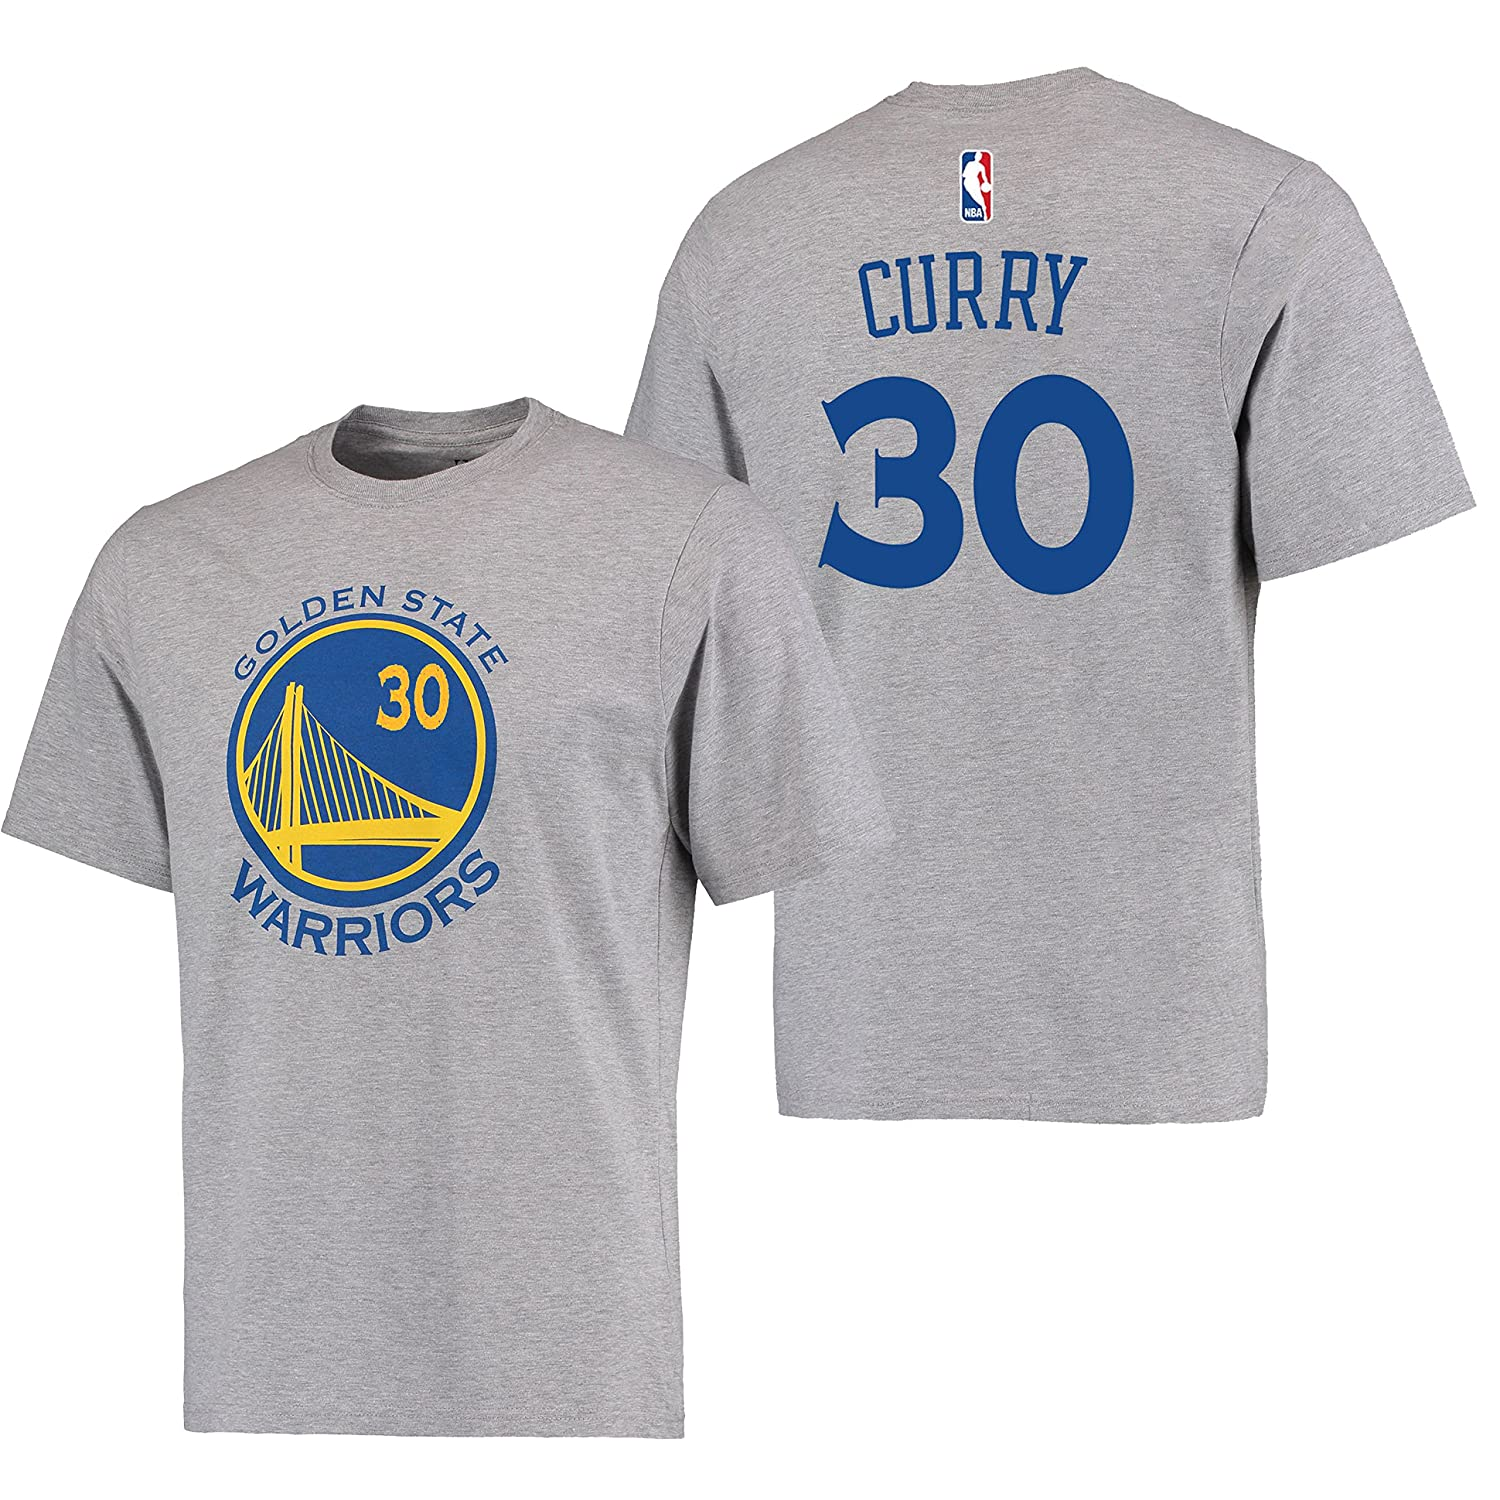 the latest 33bcc 11d45 curry t shirt